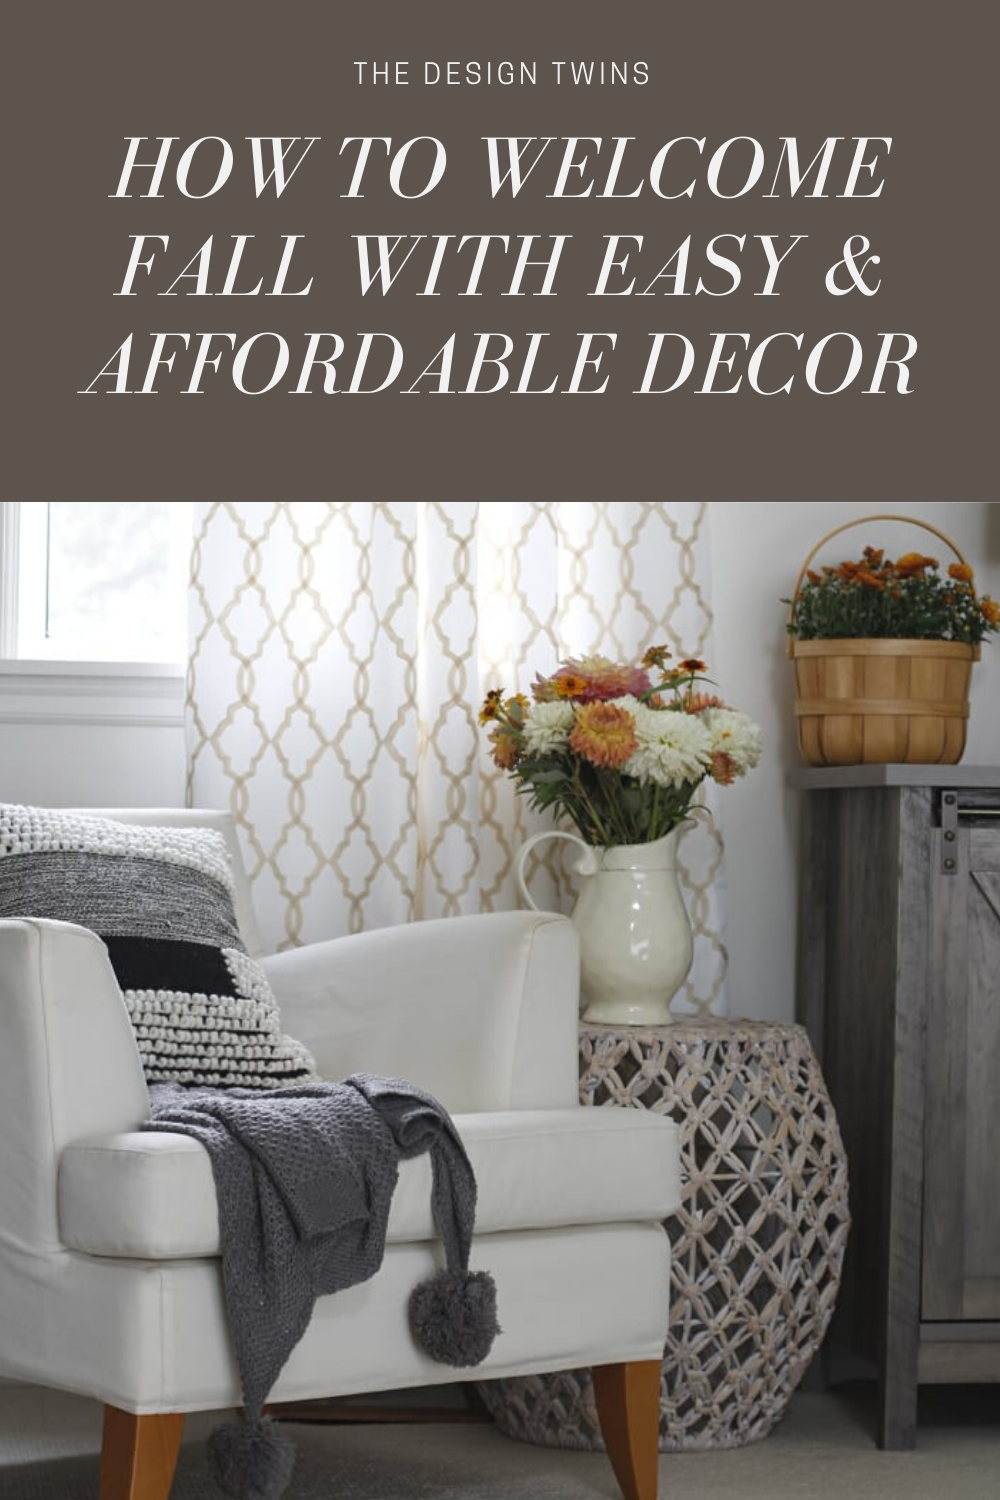 Welcome Fall With Easy And Affordable Decorating Affordable Decor Affordable Home Decor Fall Decor Inspiration